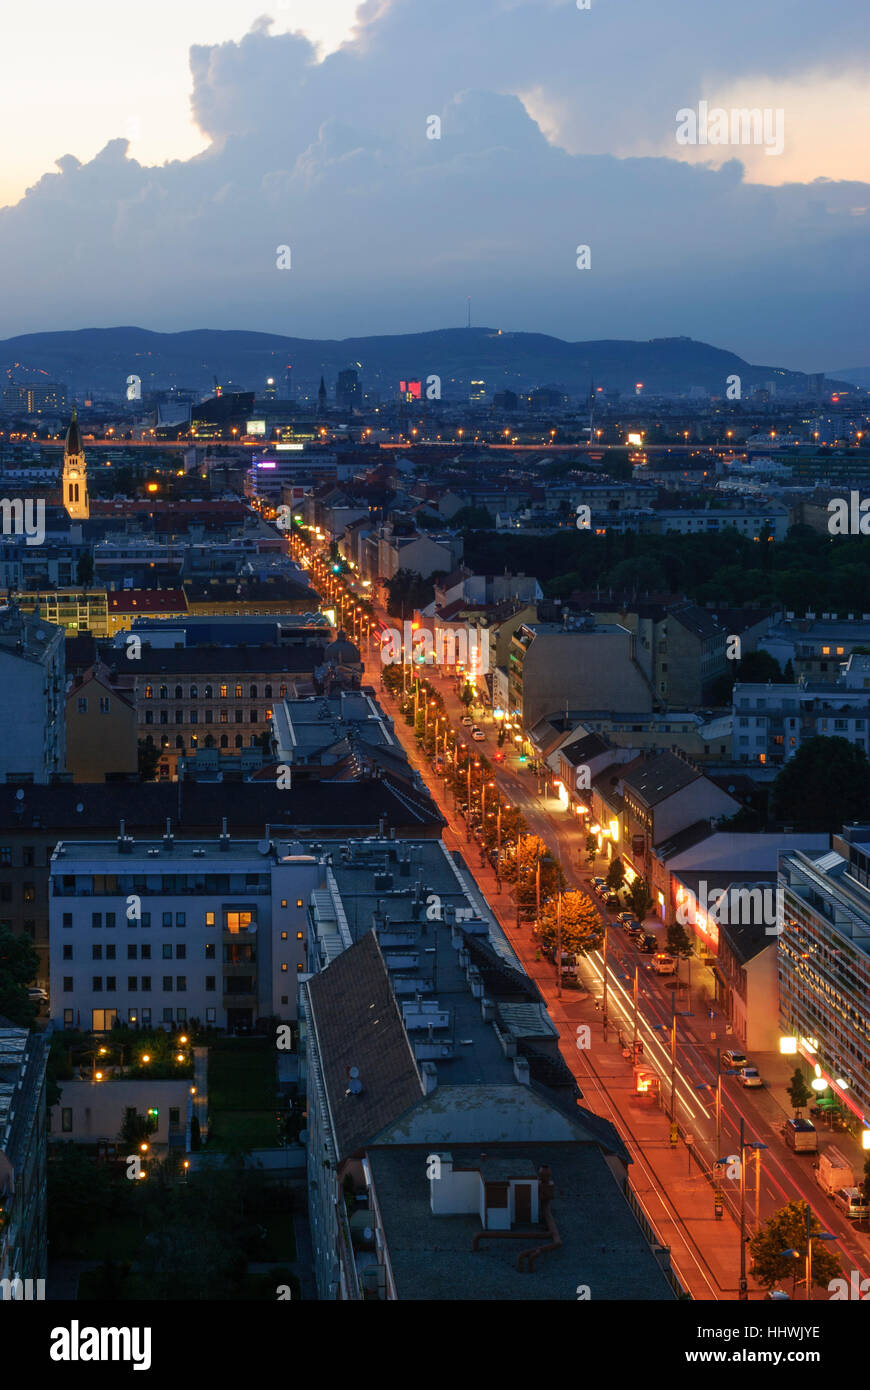 Wien, Vienna: View from highrise in Simmering to the city center, 00., Wien, Austria - Stock Image